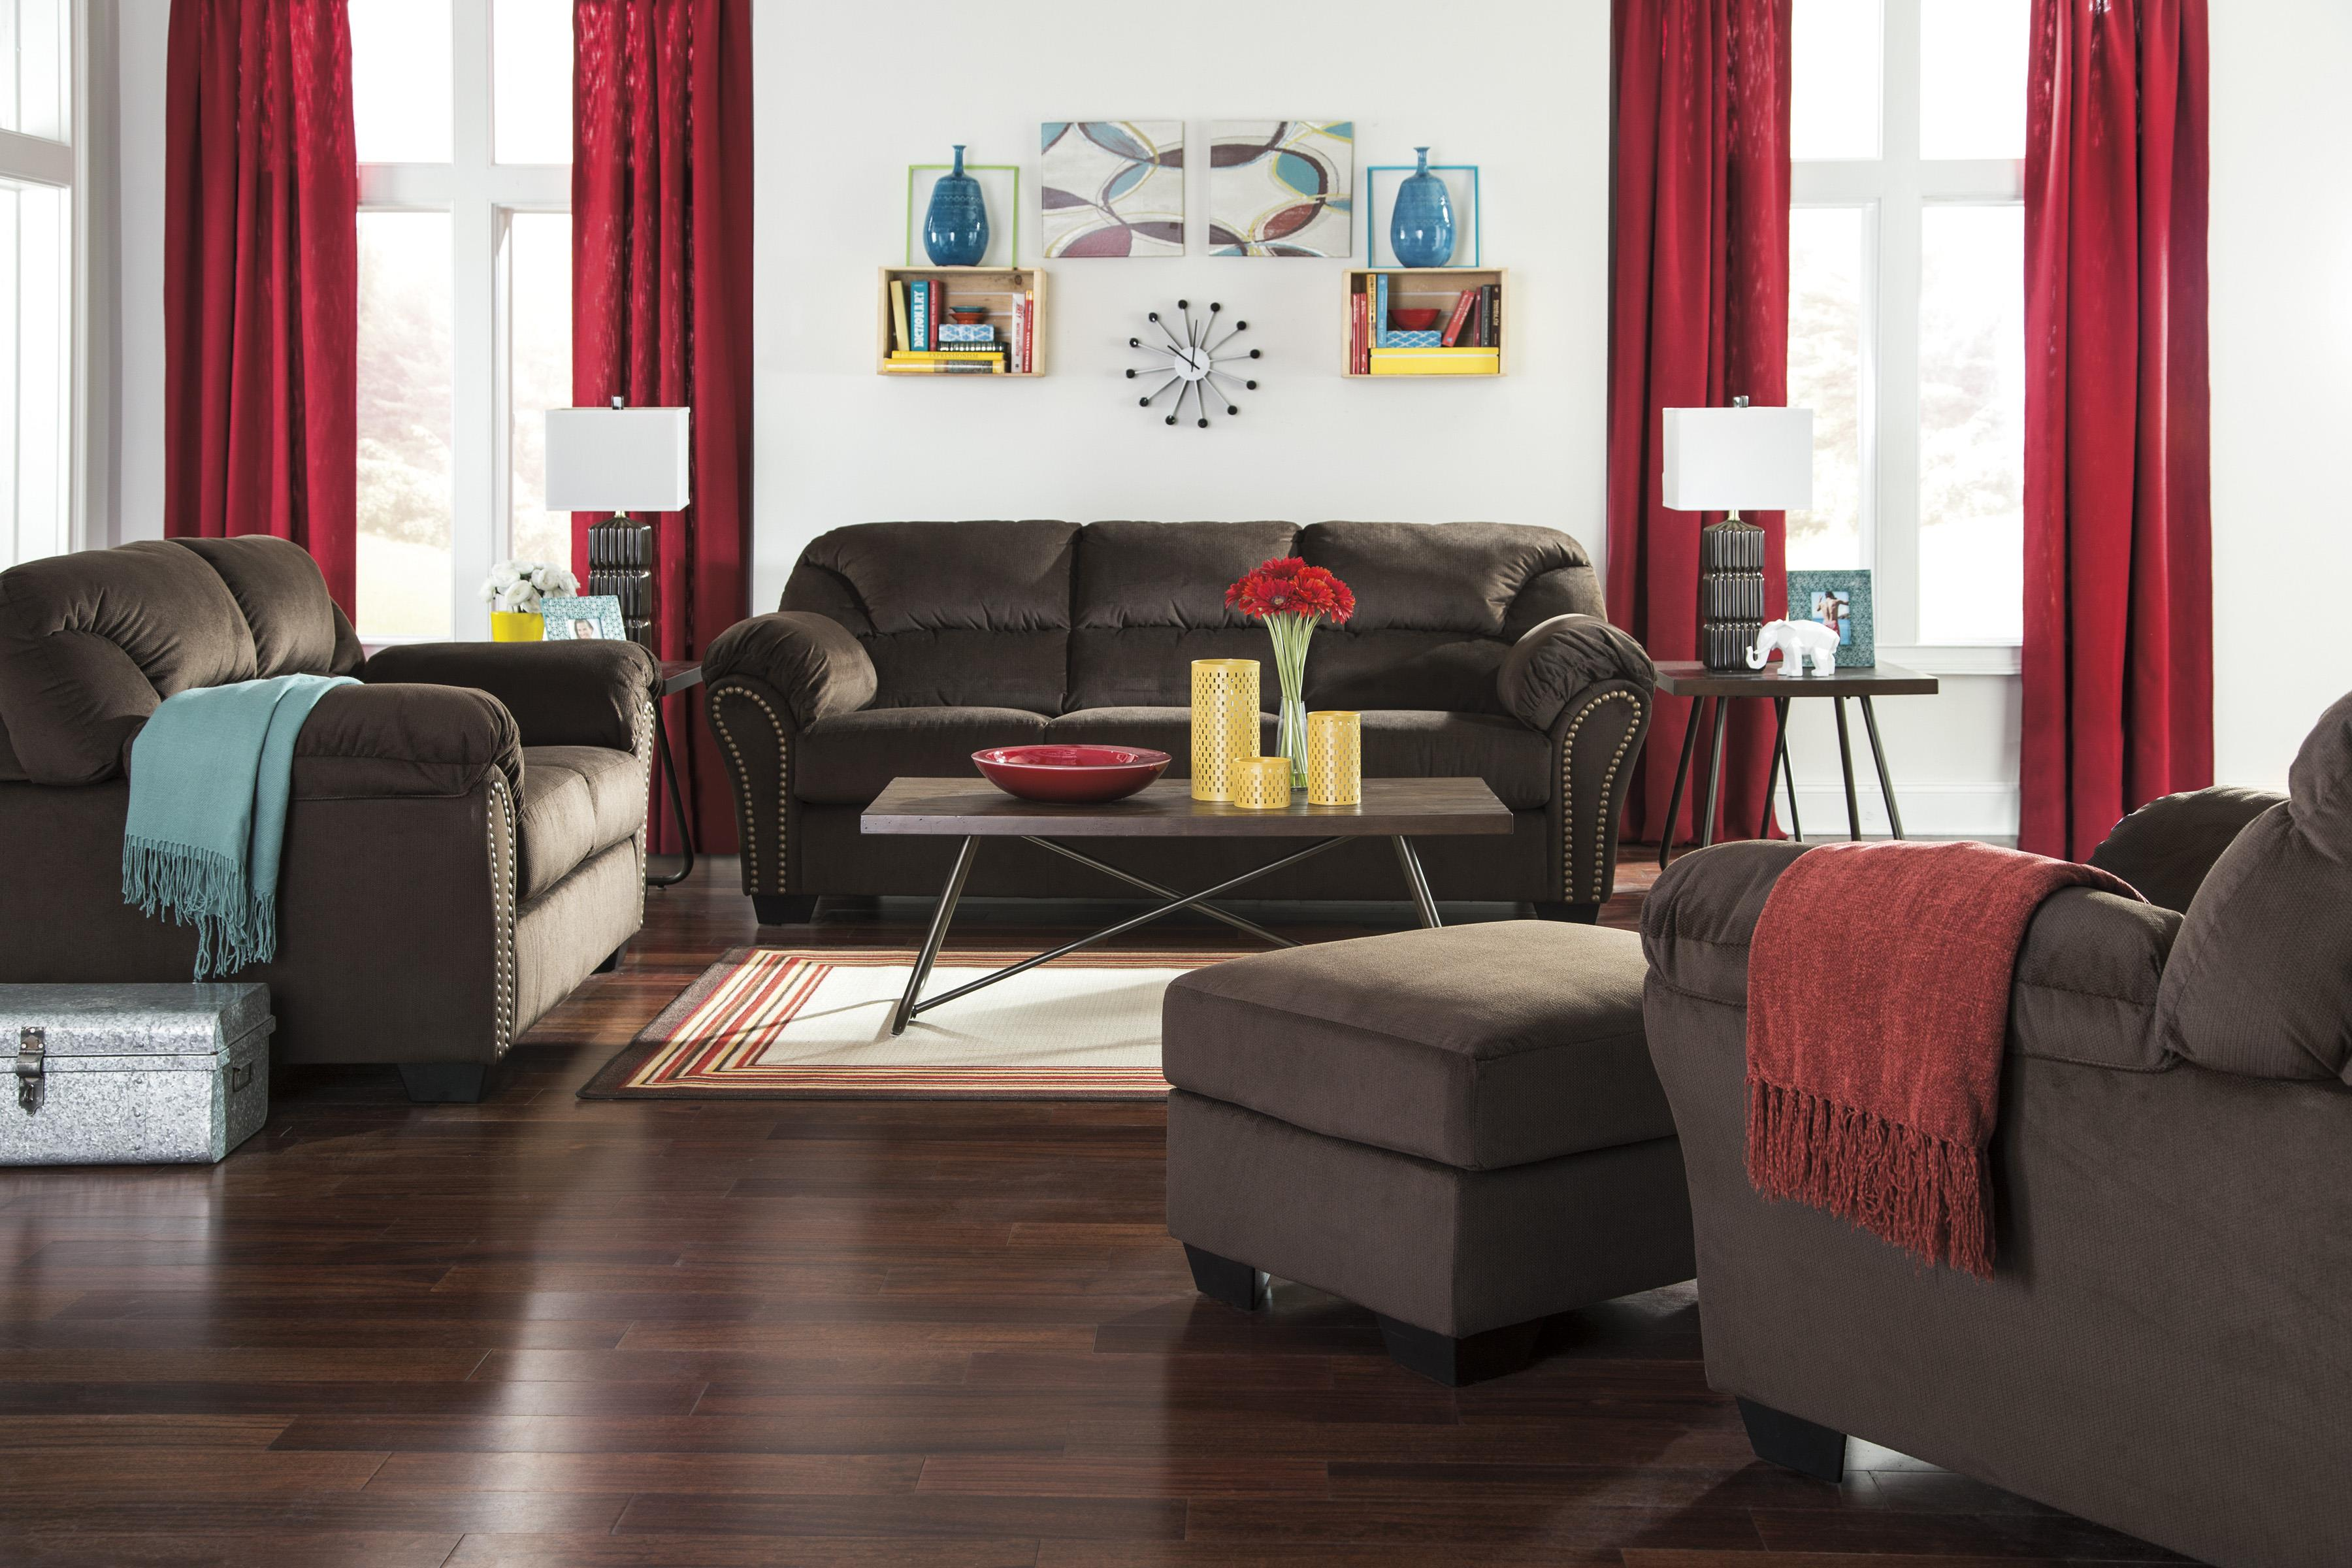 Signature Design by Ashley Kinlock Stationary Living Room Group - Item Number: 33401 Living Room Group 5